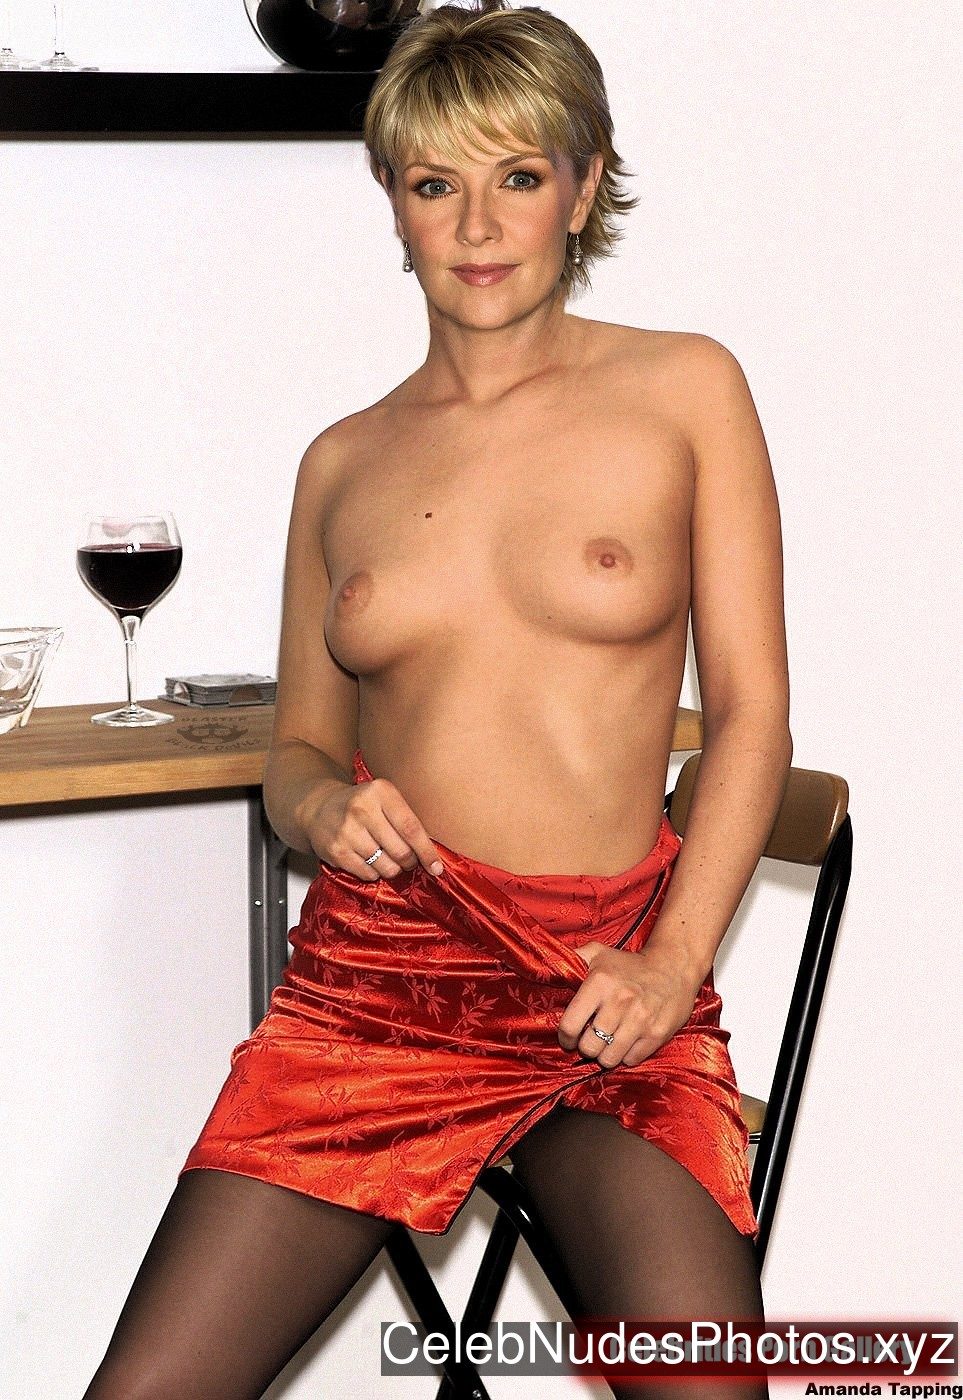 Amanda Tapping Celebrity Nude Pic sexy 19